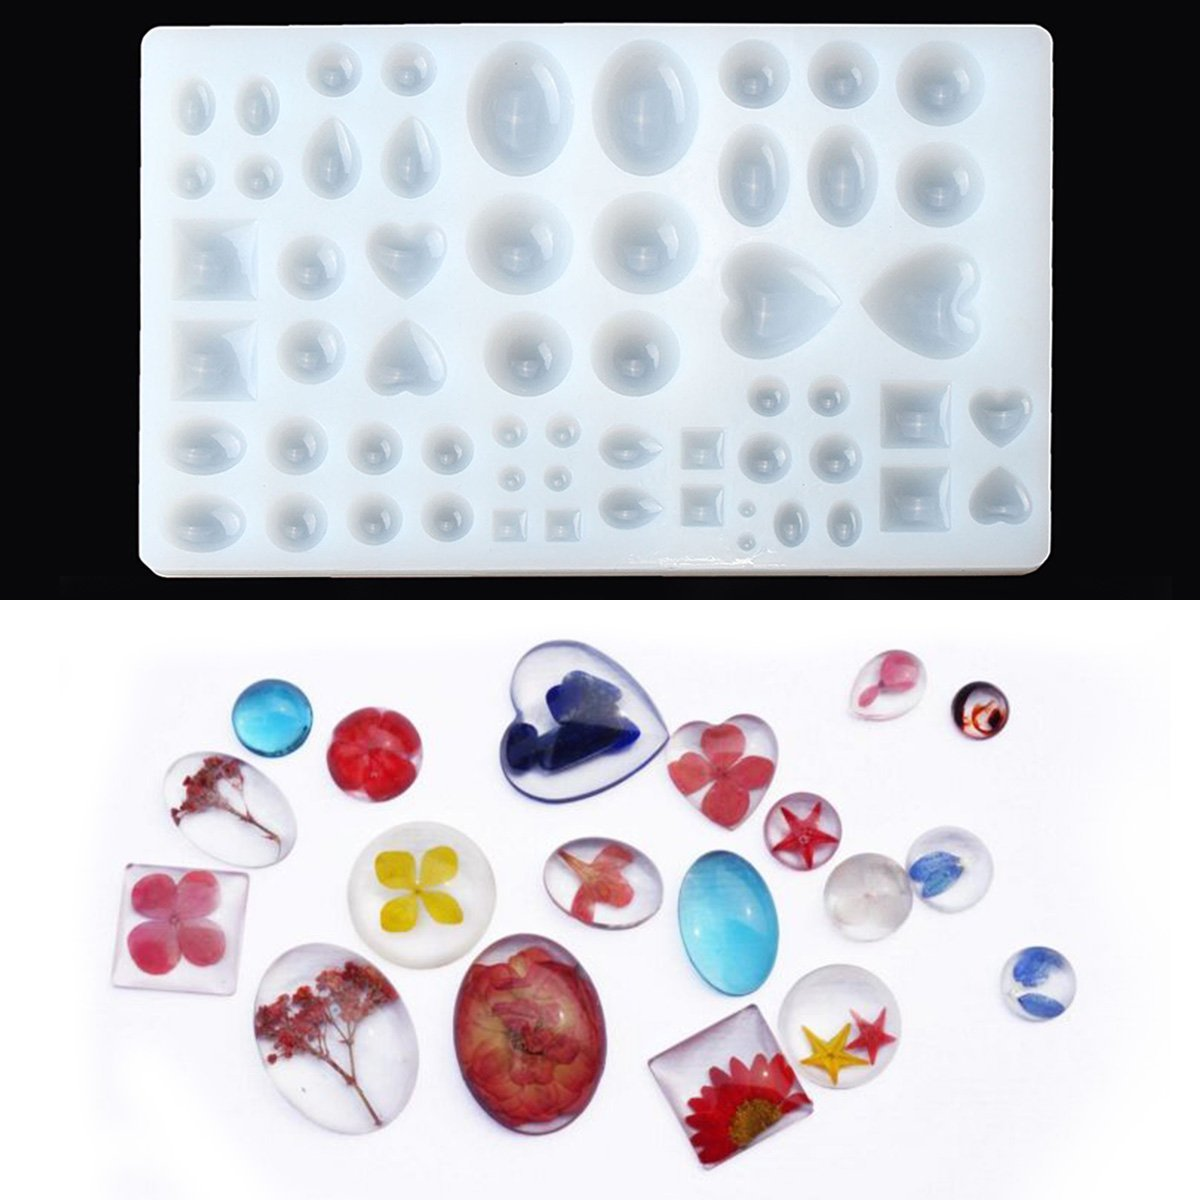 Silicone Mould Cabochon Jewelry Casting DIY Stencils for Pendant Key Chain Handmade Craft